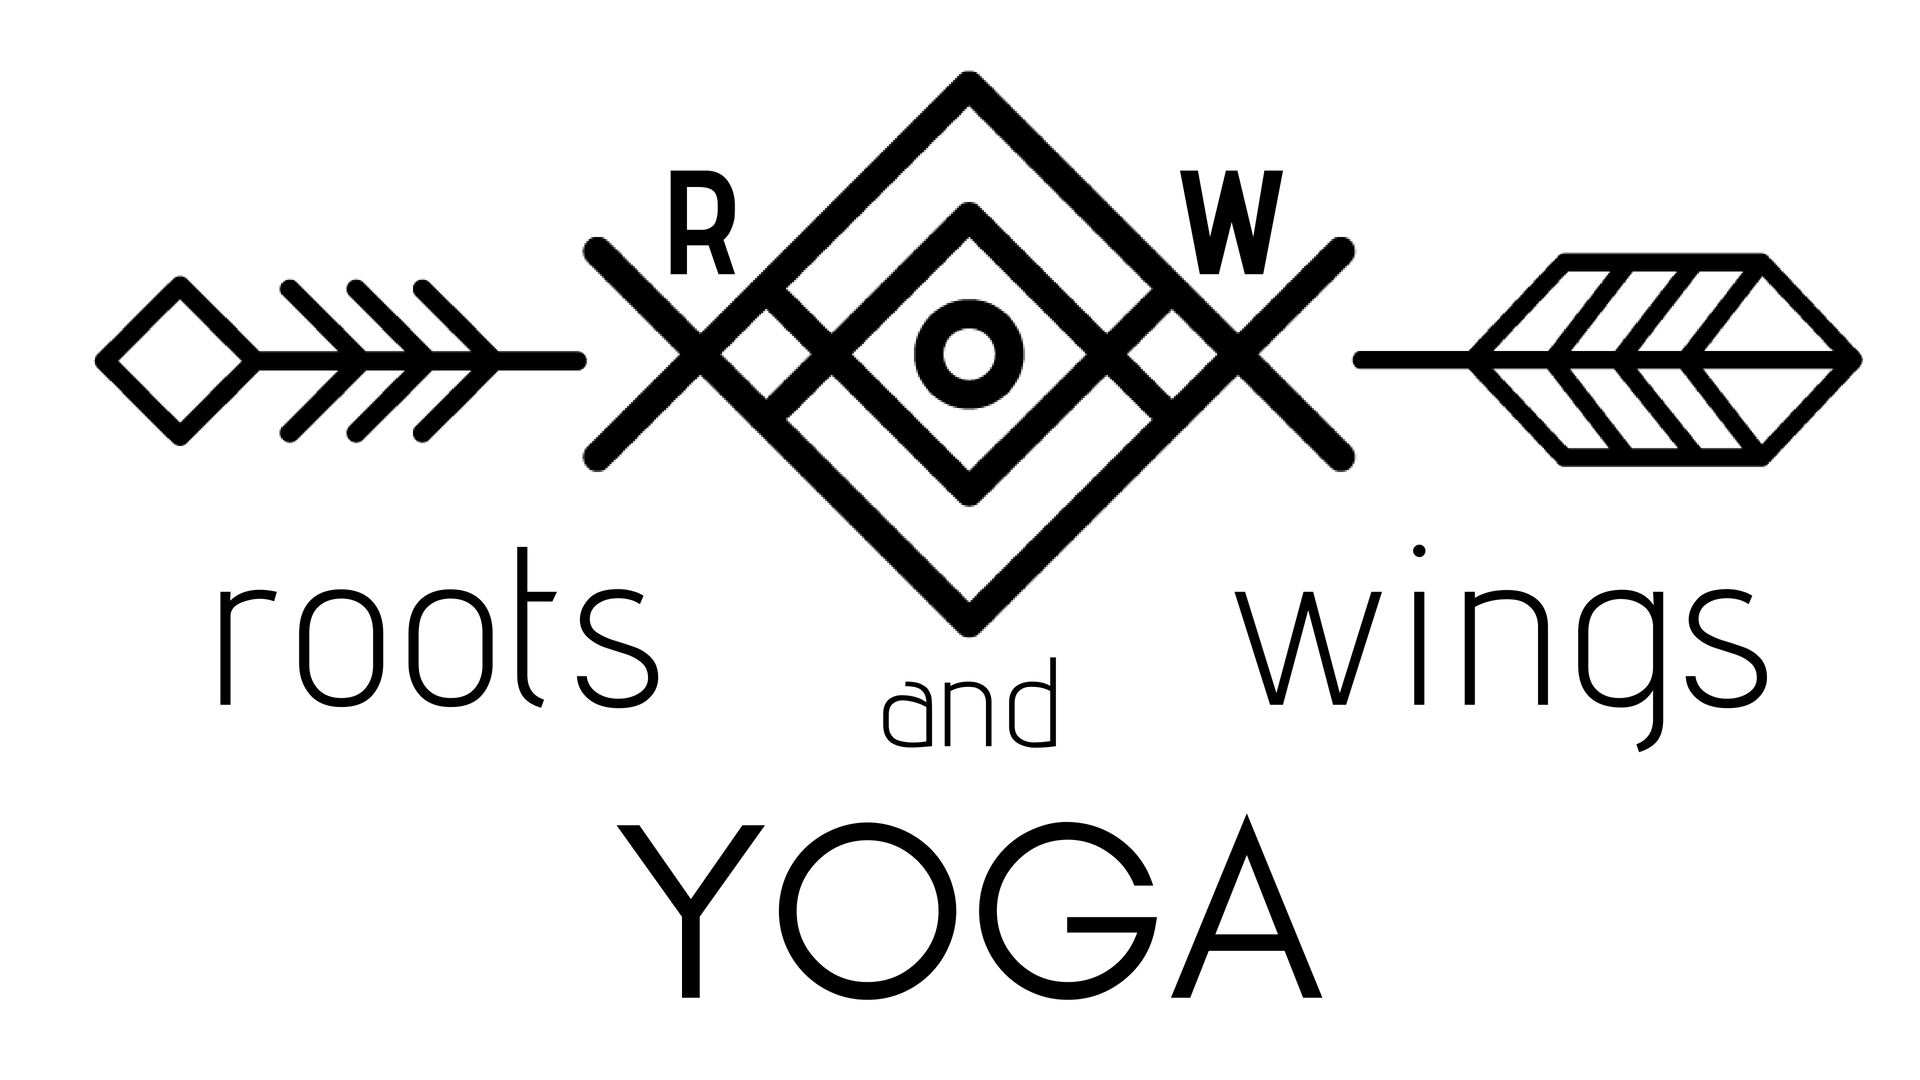 roots rectangle (2).png